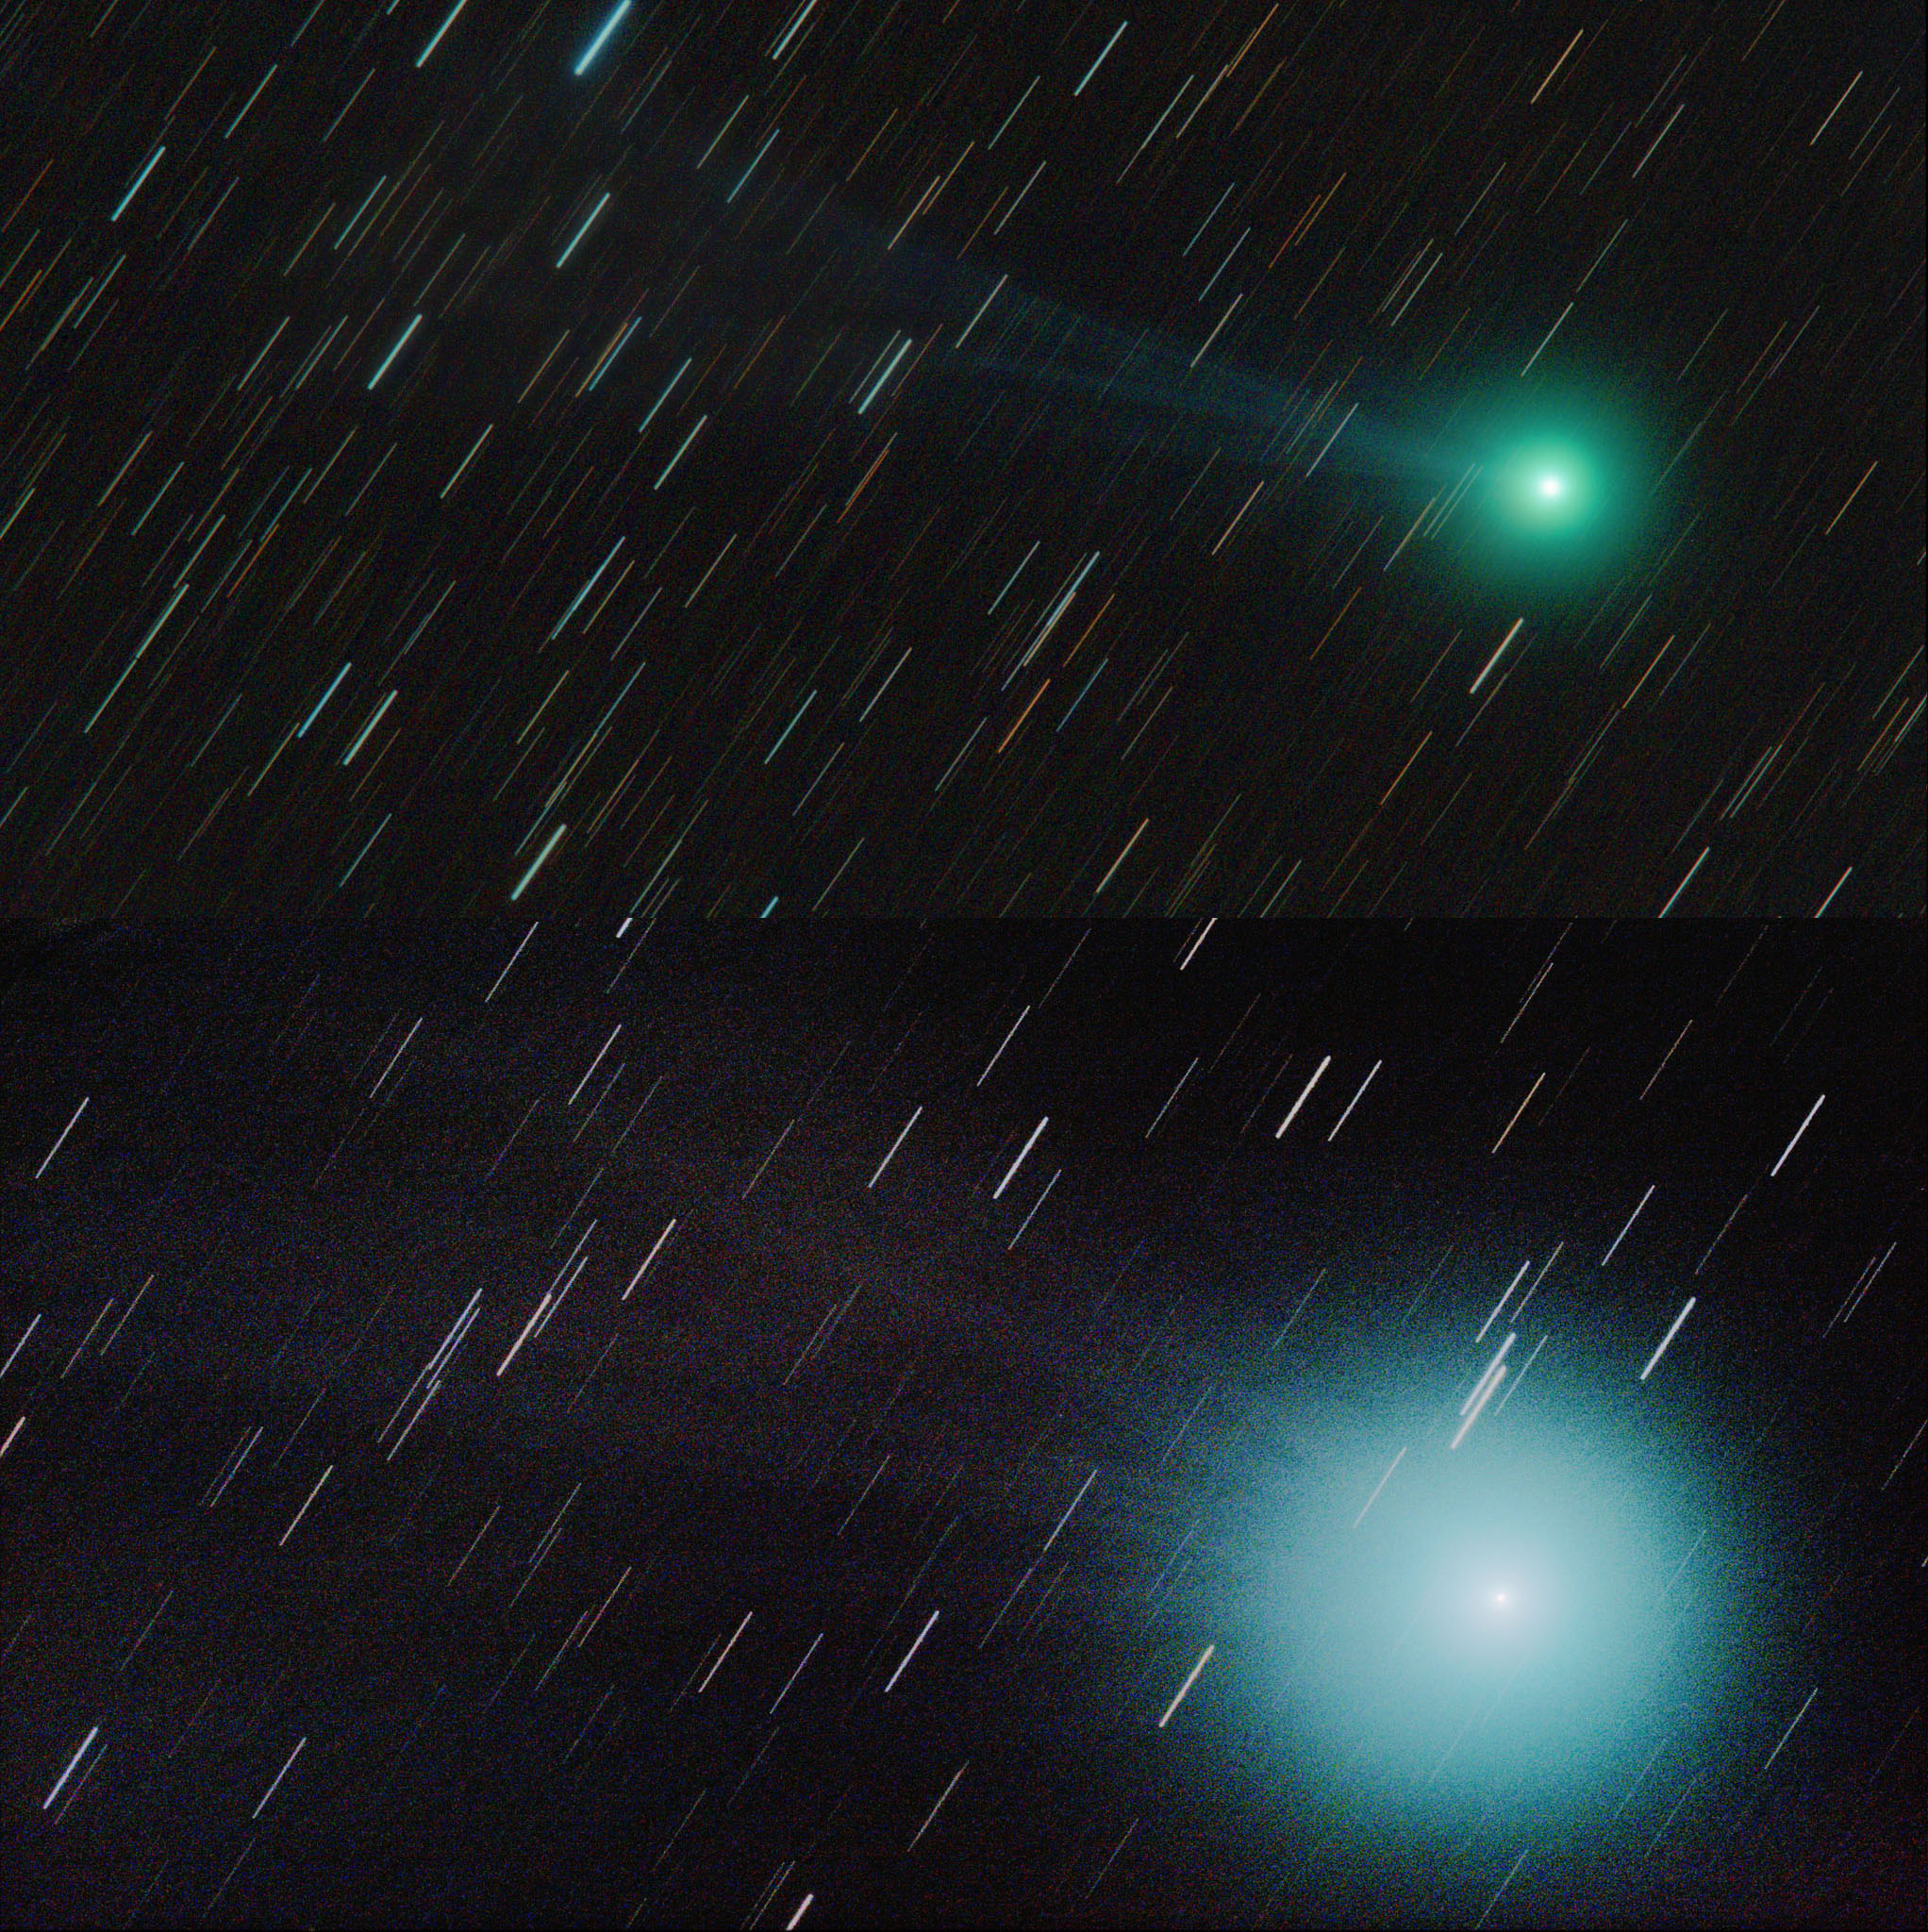 The comet Lovejoy C/2014 Q2